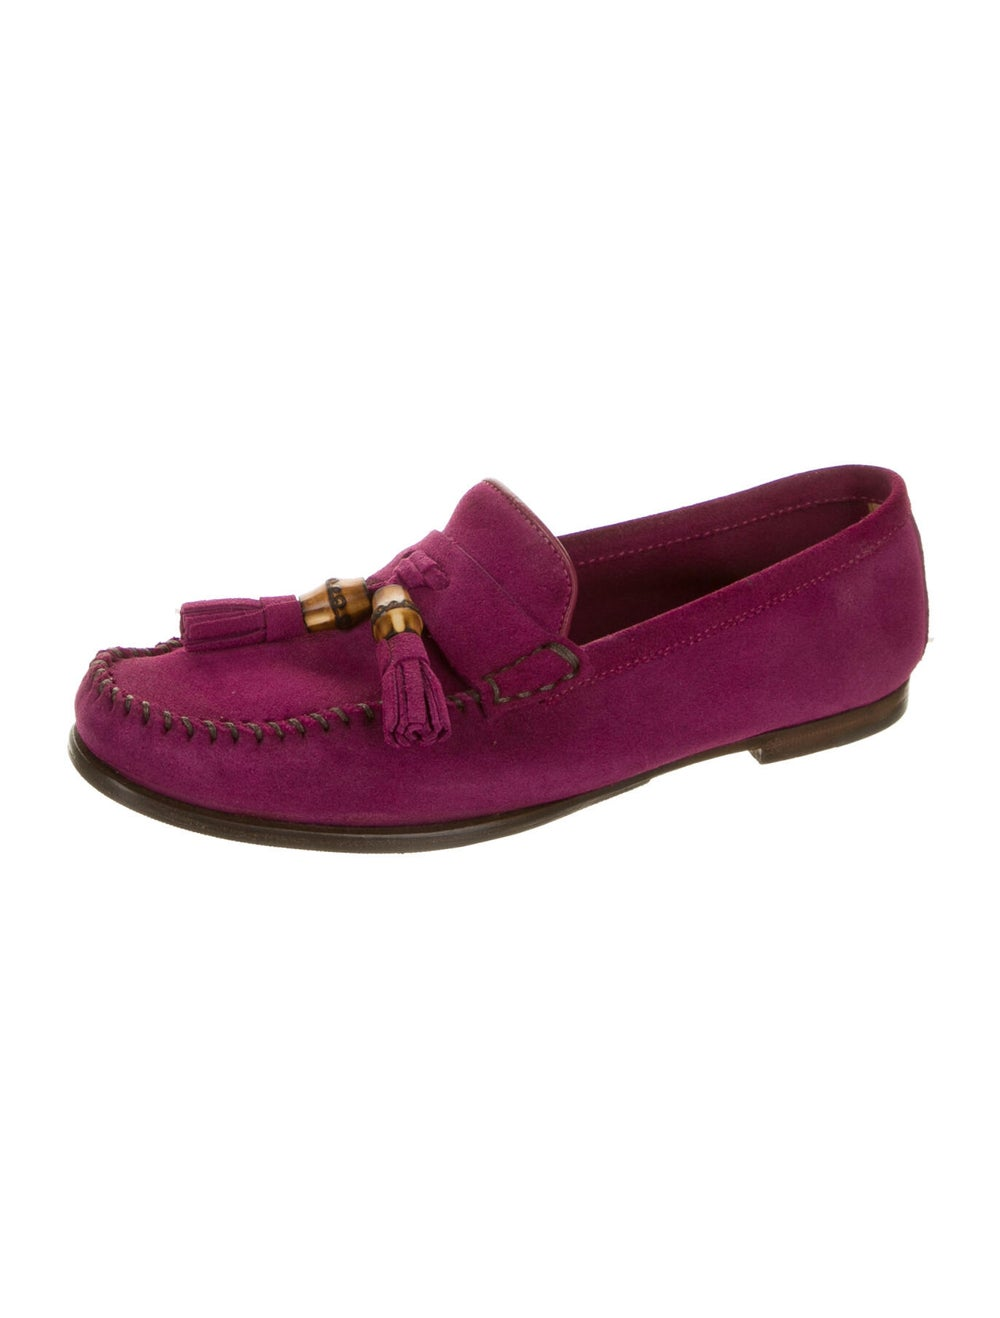 Gucci Suede Loafers Purple - image 2